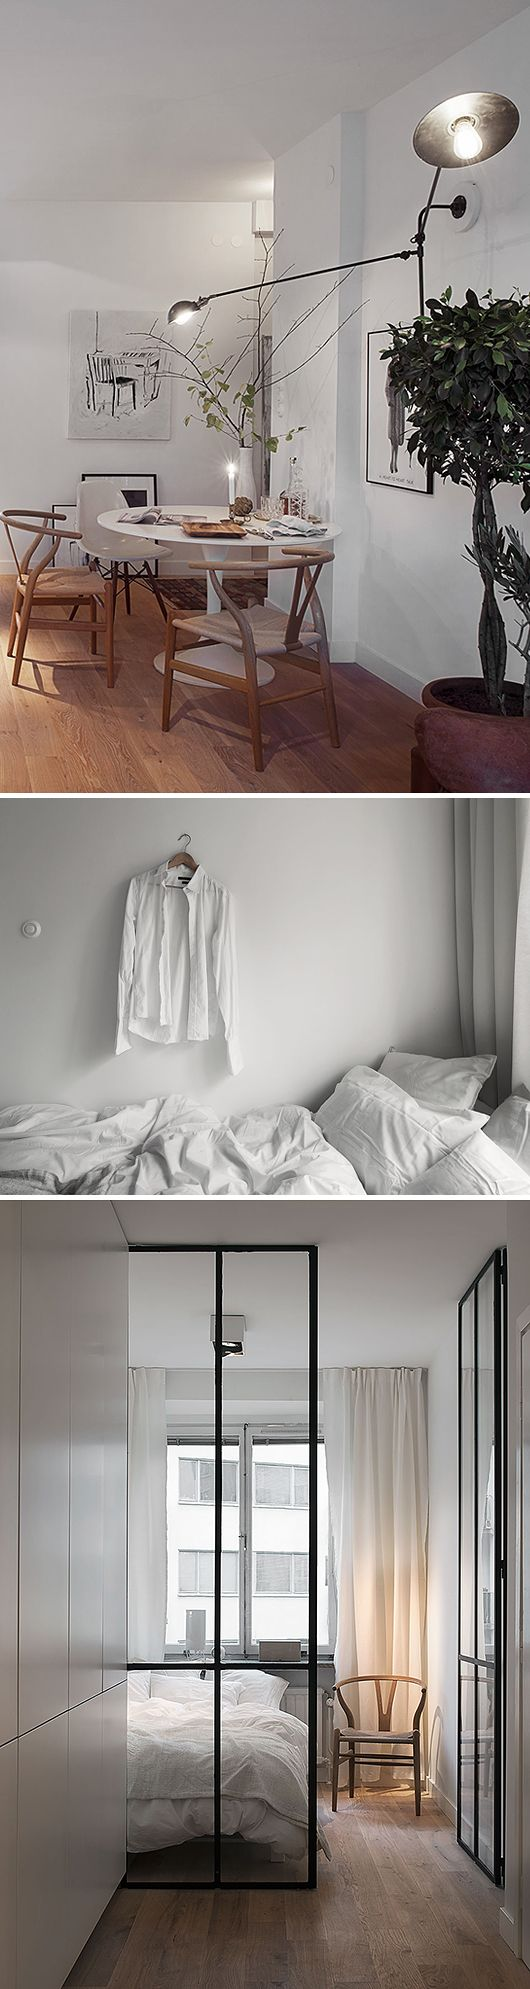 Scandinavian design inspiration bycocoon.com | neutral tones with wood | interior design | bathroom design | villa design | hotel projects | design products for easy living | Dutch Designer Brand COCOON